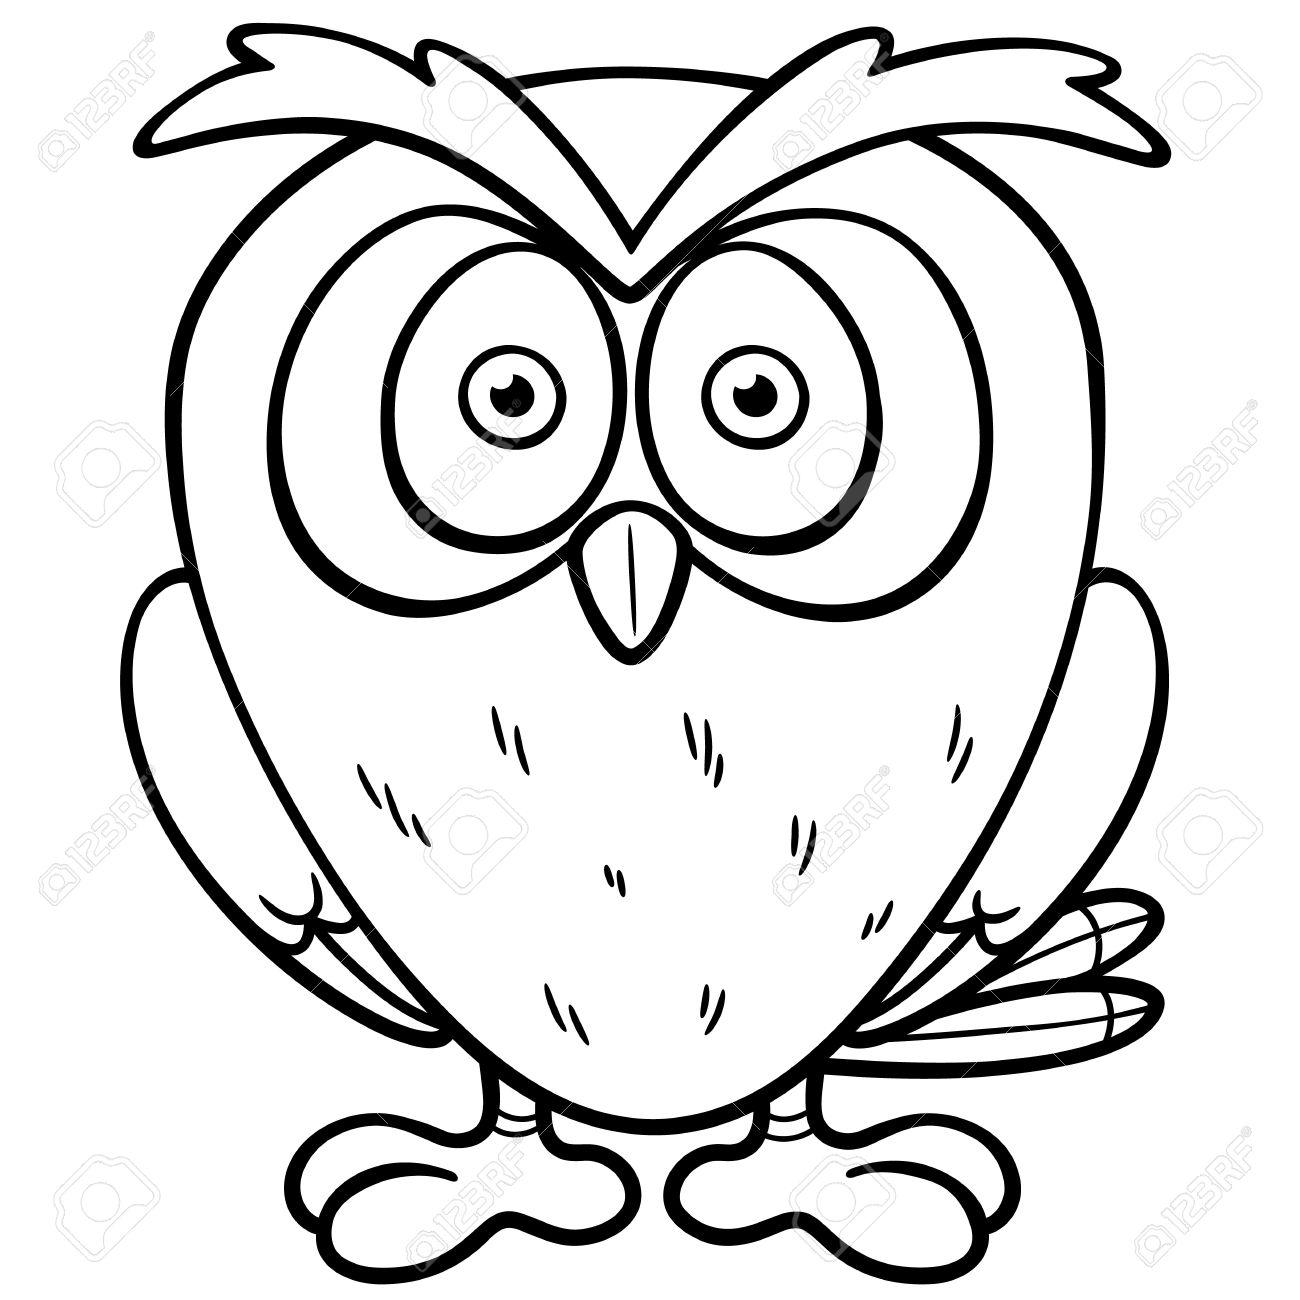 Vector Illustration Of Cartoon Owl - Coloring Book Royalty Free ...